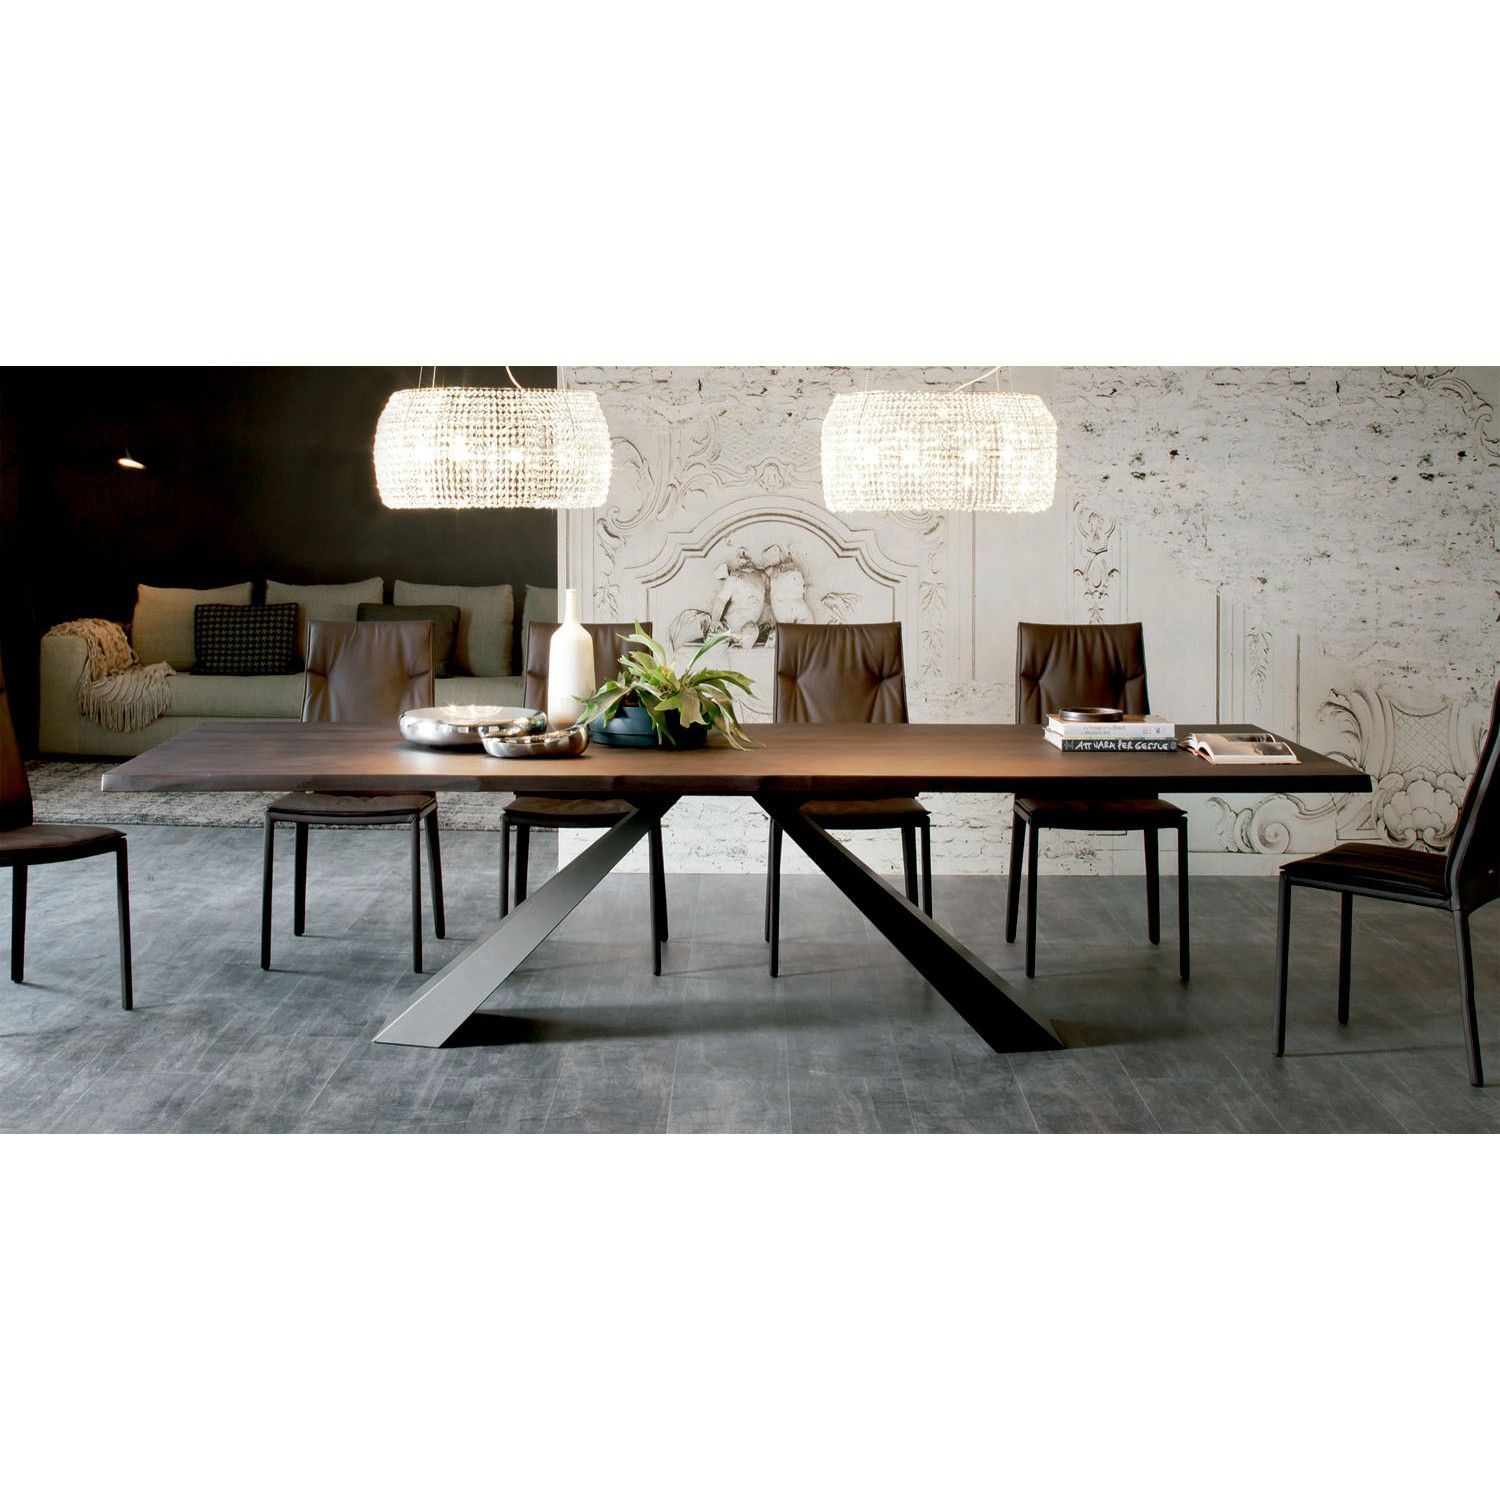 Cattelan italia mesa de comedor eliot wood eliot wood for Decorar mesas de salon modernas